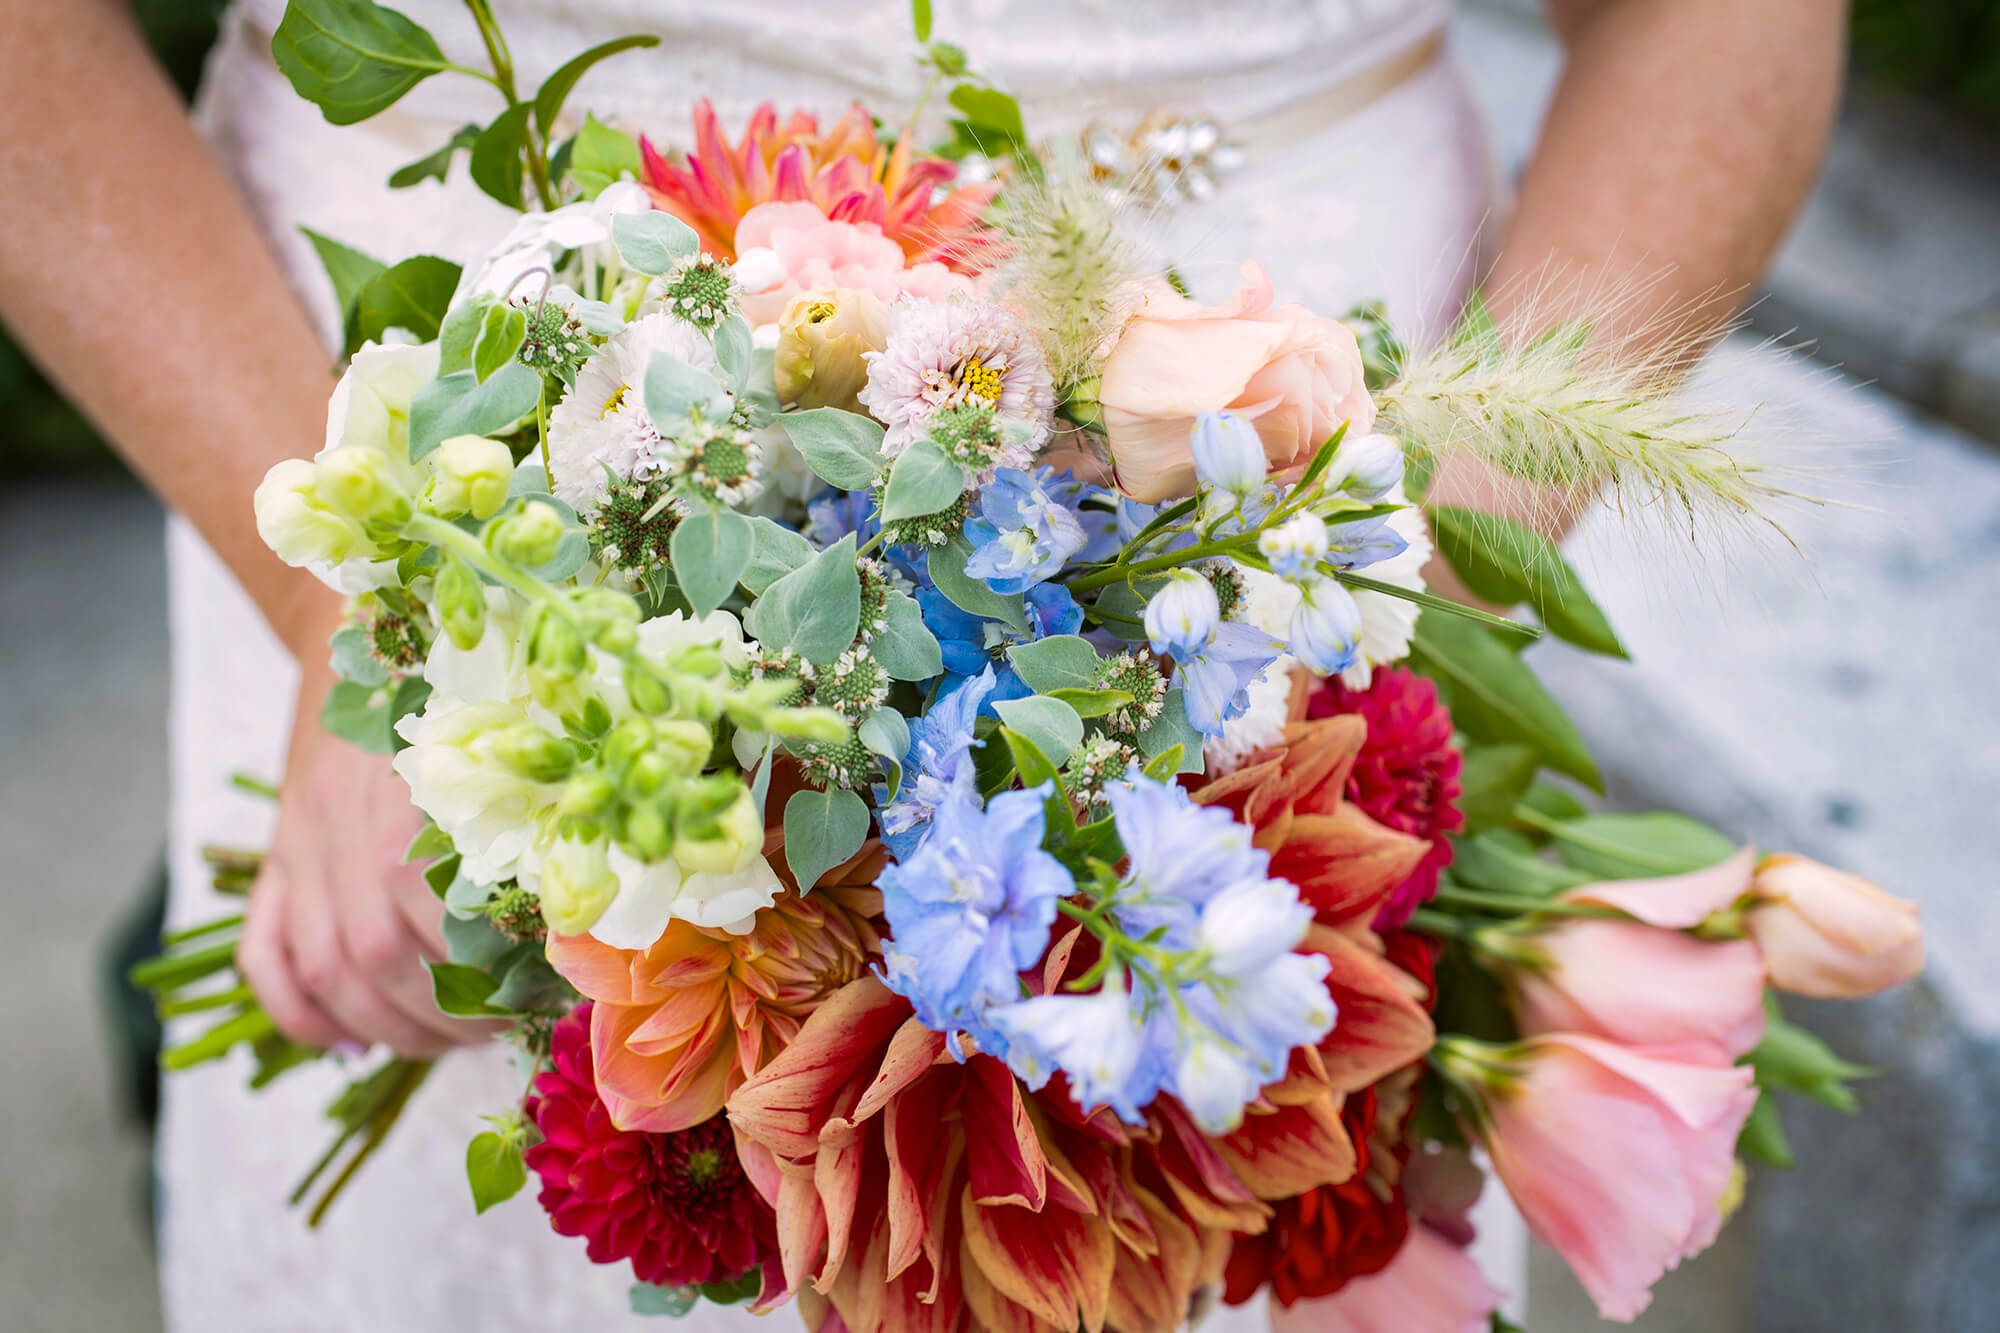 Wedding photography of a bouquet being held by the bride